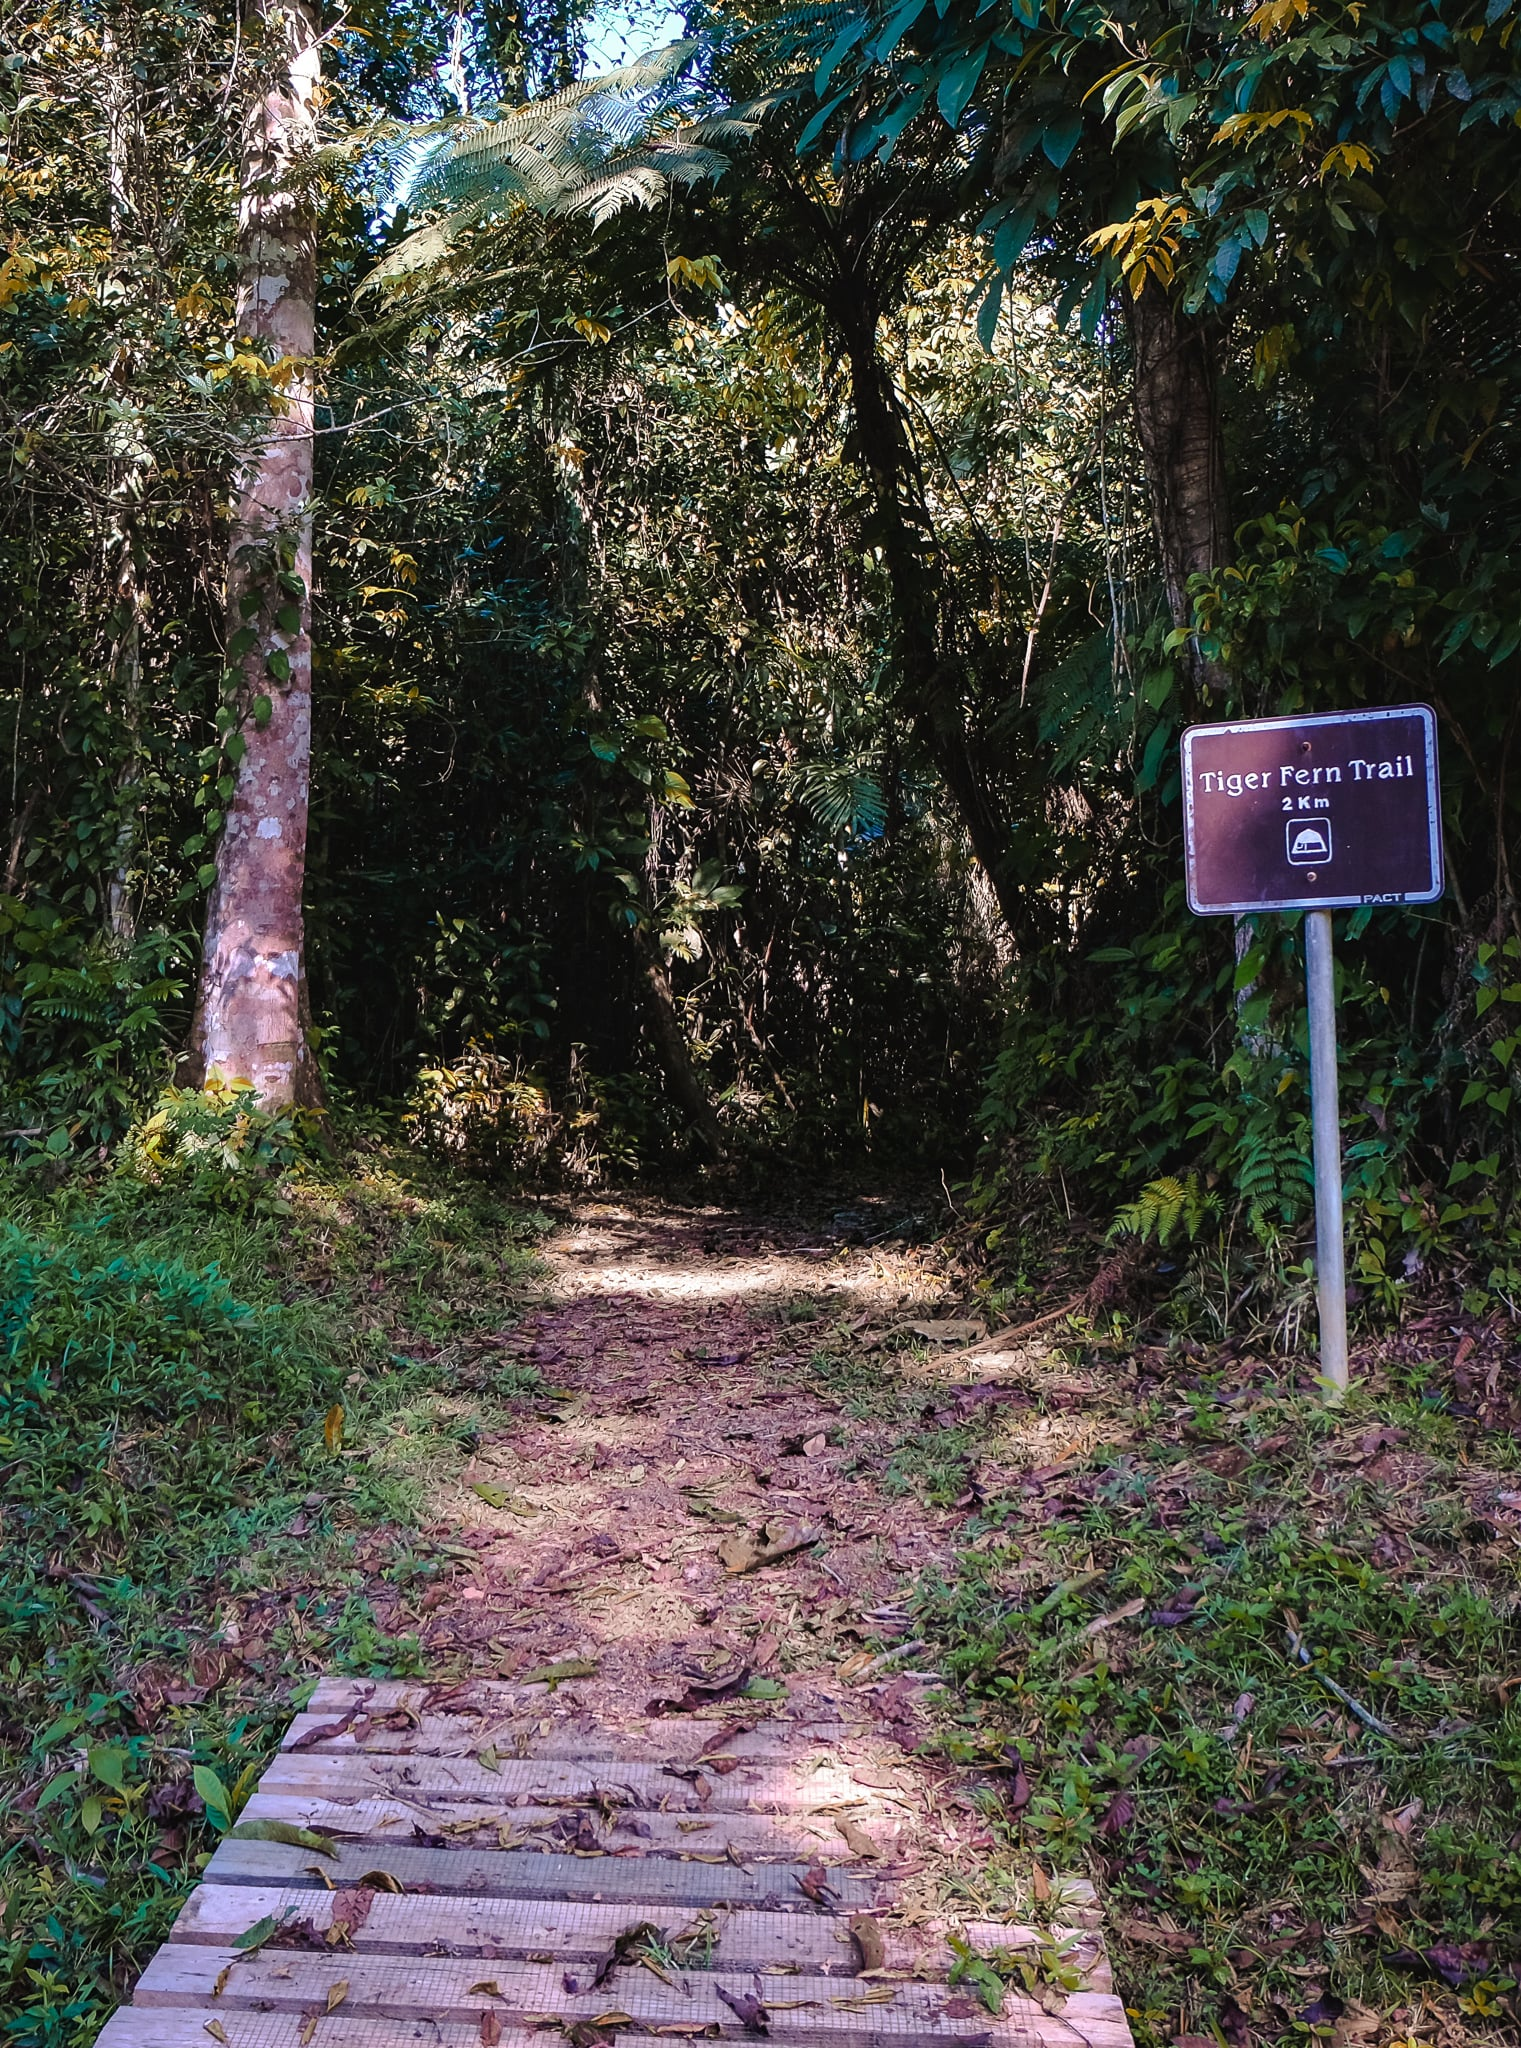 The trailhead to Tiger Fern Falls is located off the access road